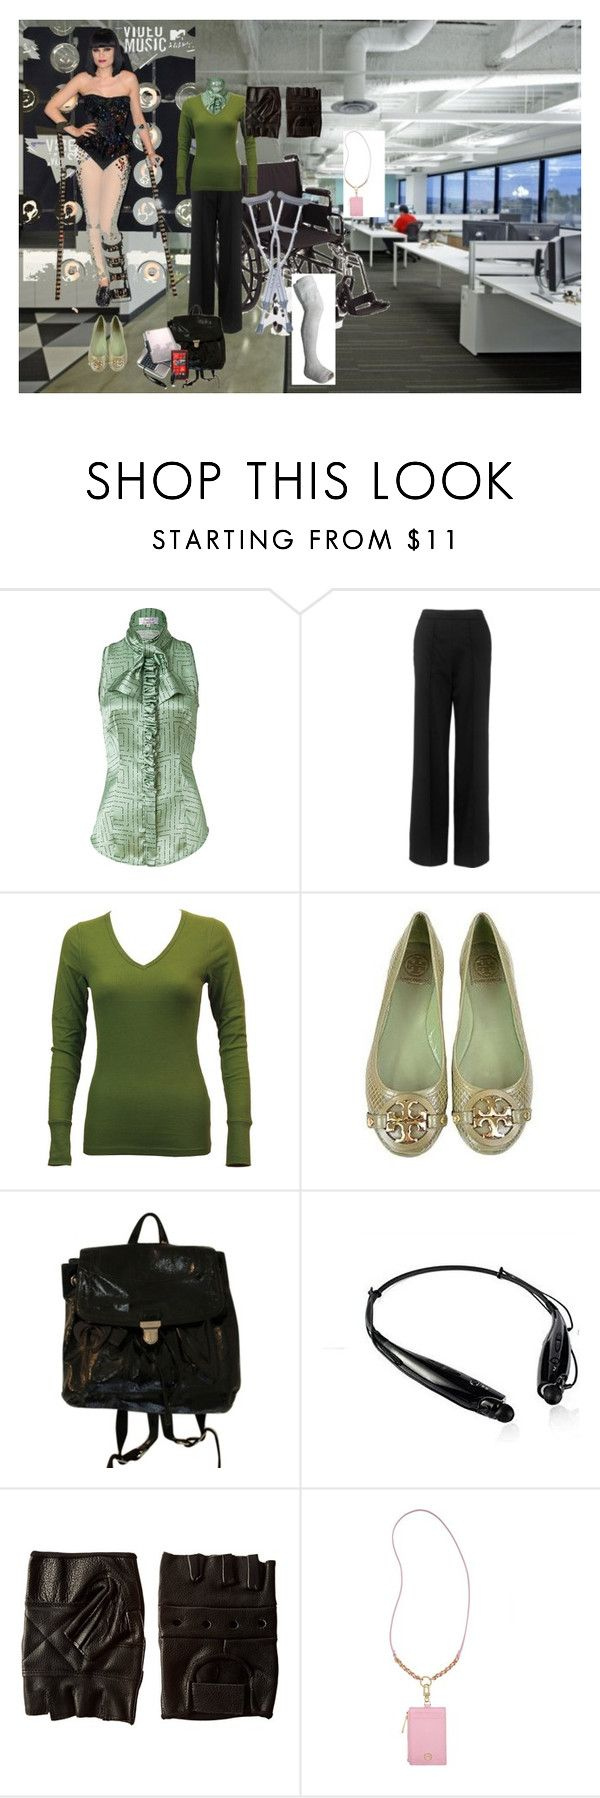 """""""What to Wear to Work When You Break Your Leg"""" by slc95815 ❤ liked on Polyvore featuring L'Wren Scott, Whistles, Clothes Effect, Tory Burch, Coach and Nokia"""